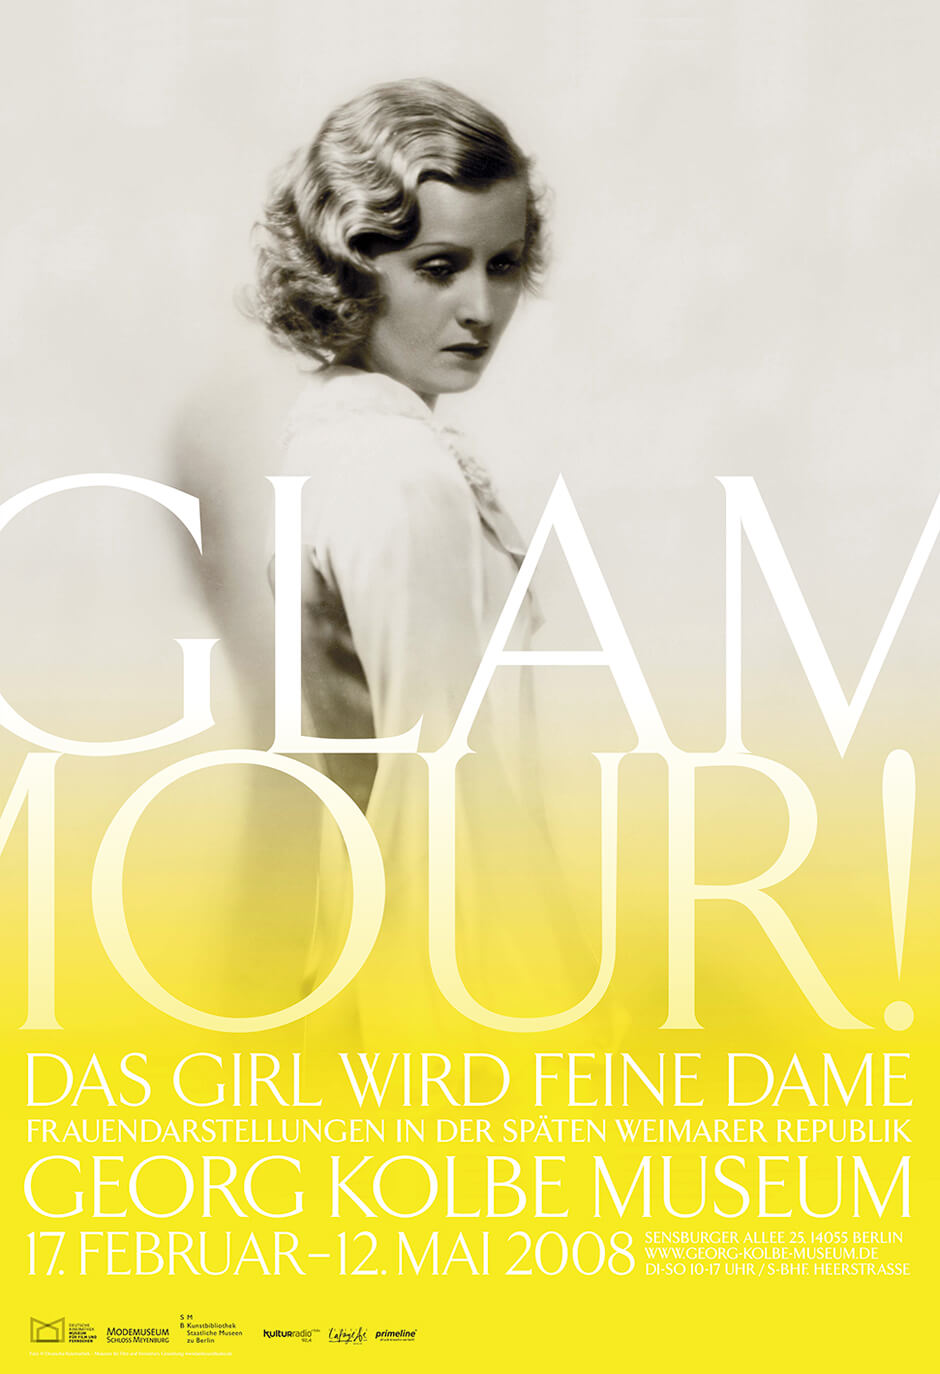 Georg_Kolbe_Museum_Glamour_Poster